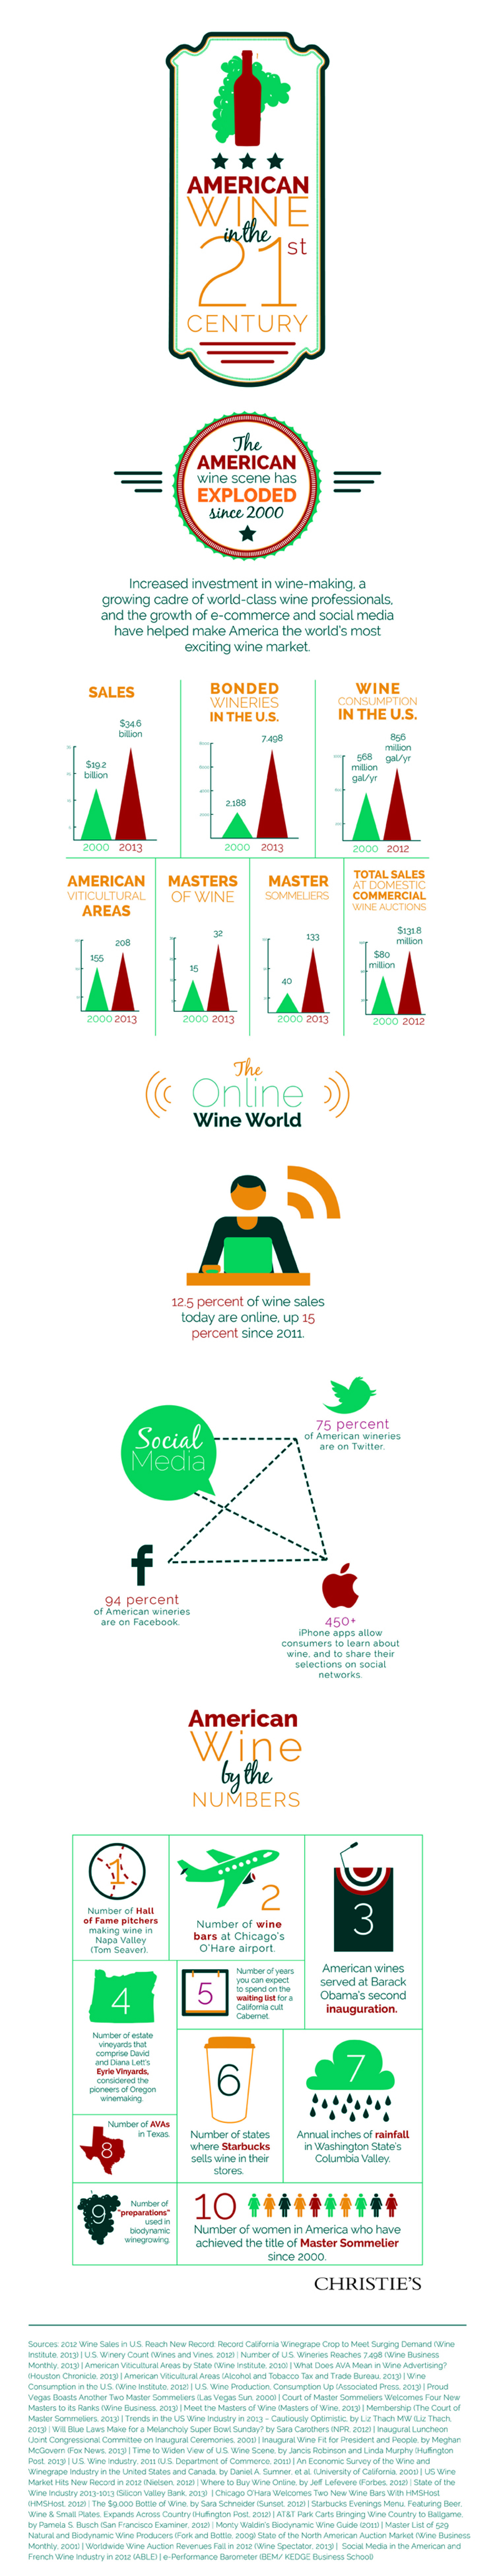 American Wine in the 21st Century Infographic